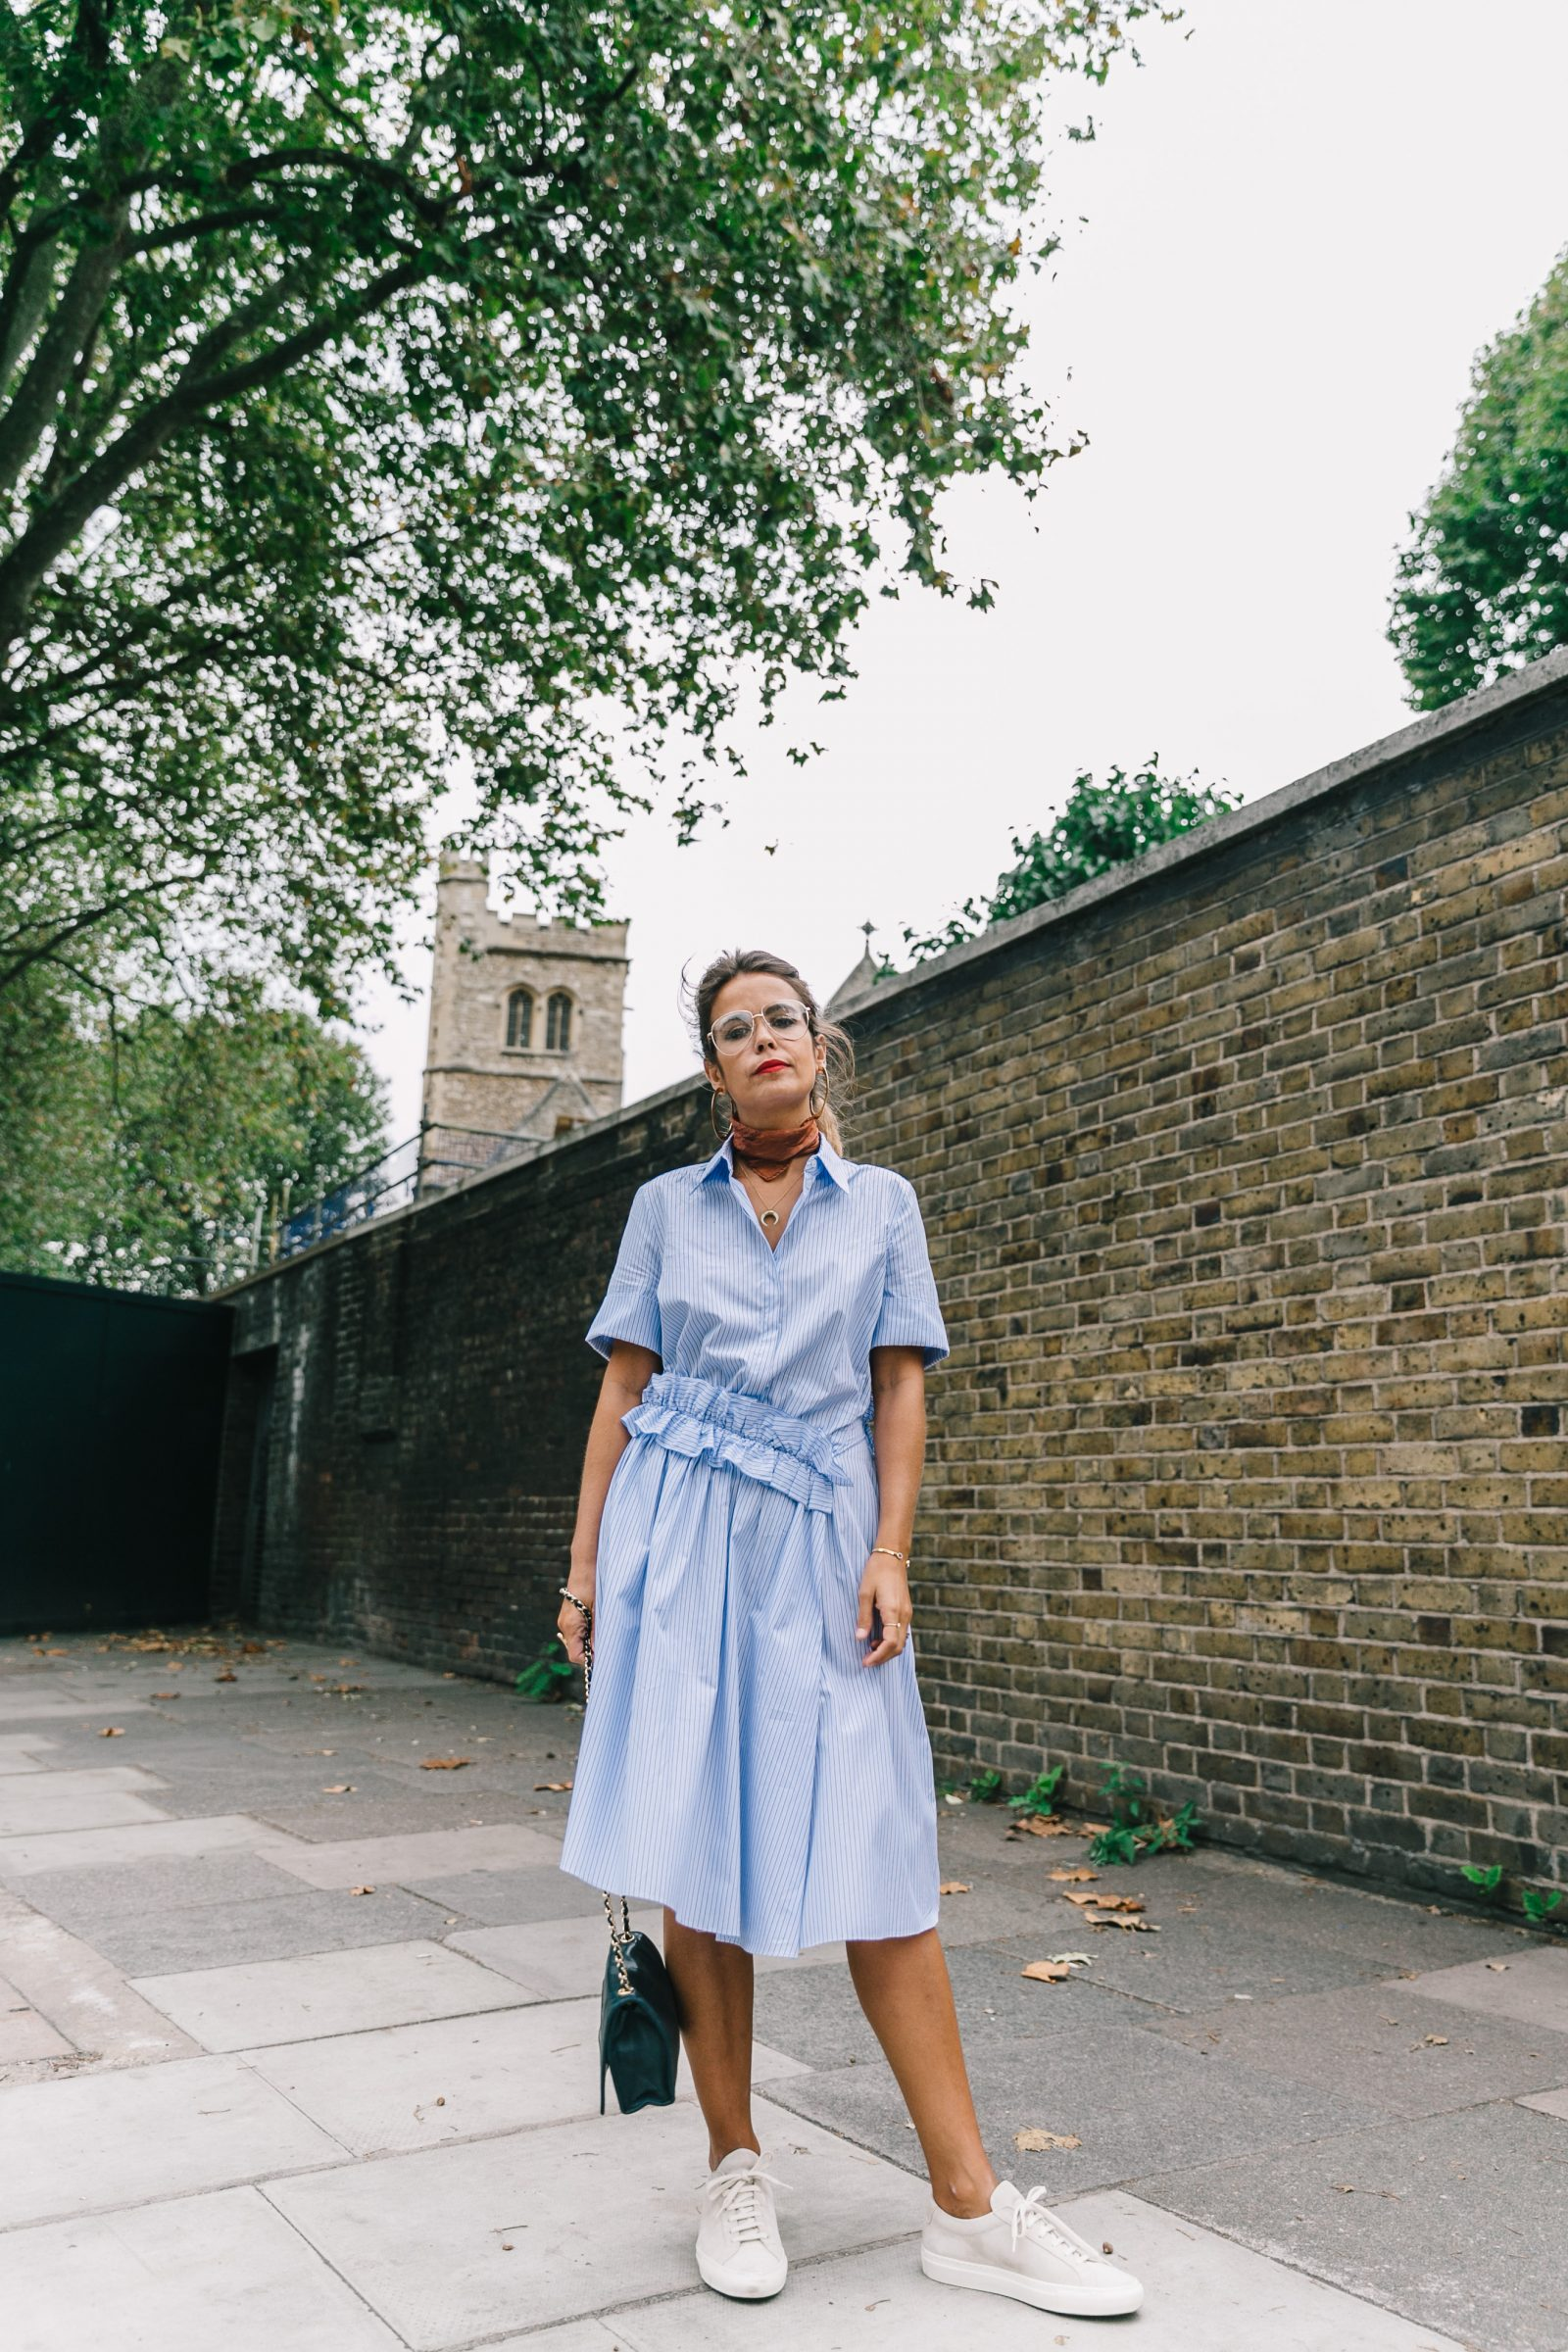 lfw-london_fashion_week_ss17-street_style-outfits-collage_vintage-vintage-stripped_dress-victoria_beckham-avenue_32